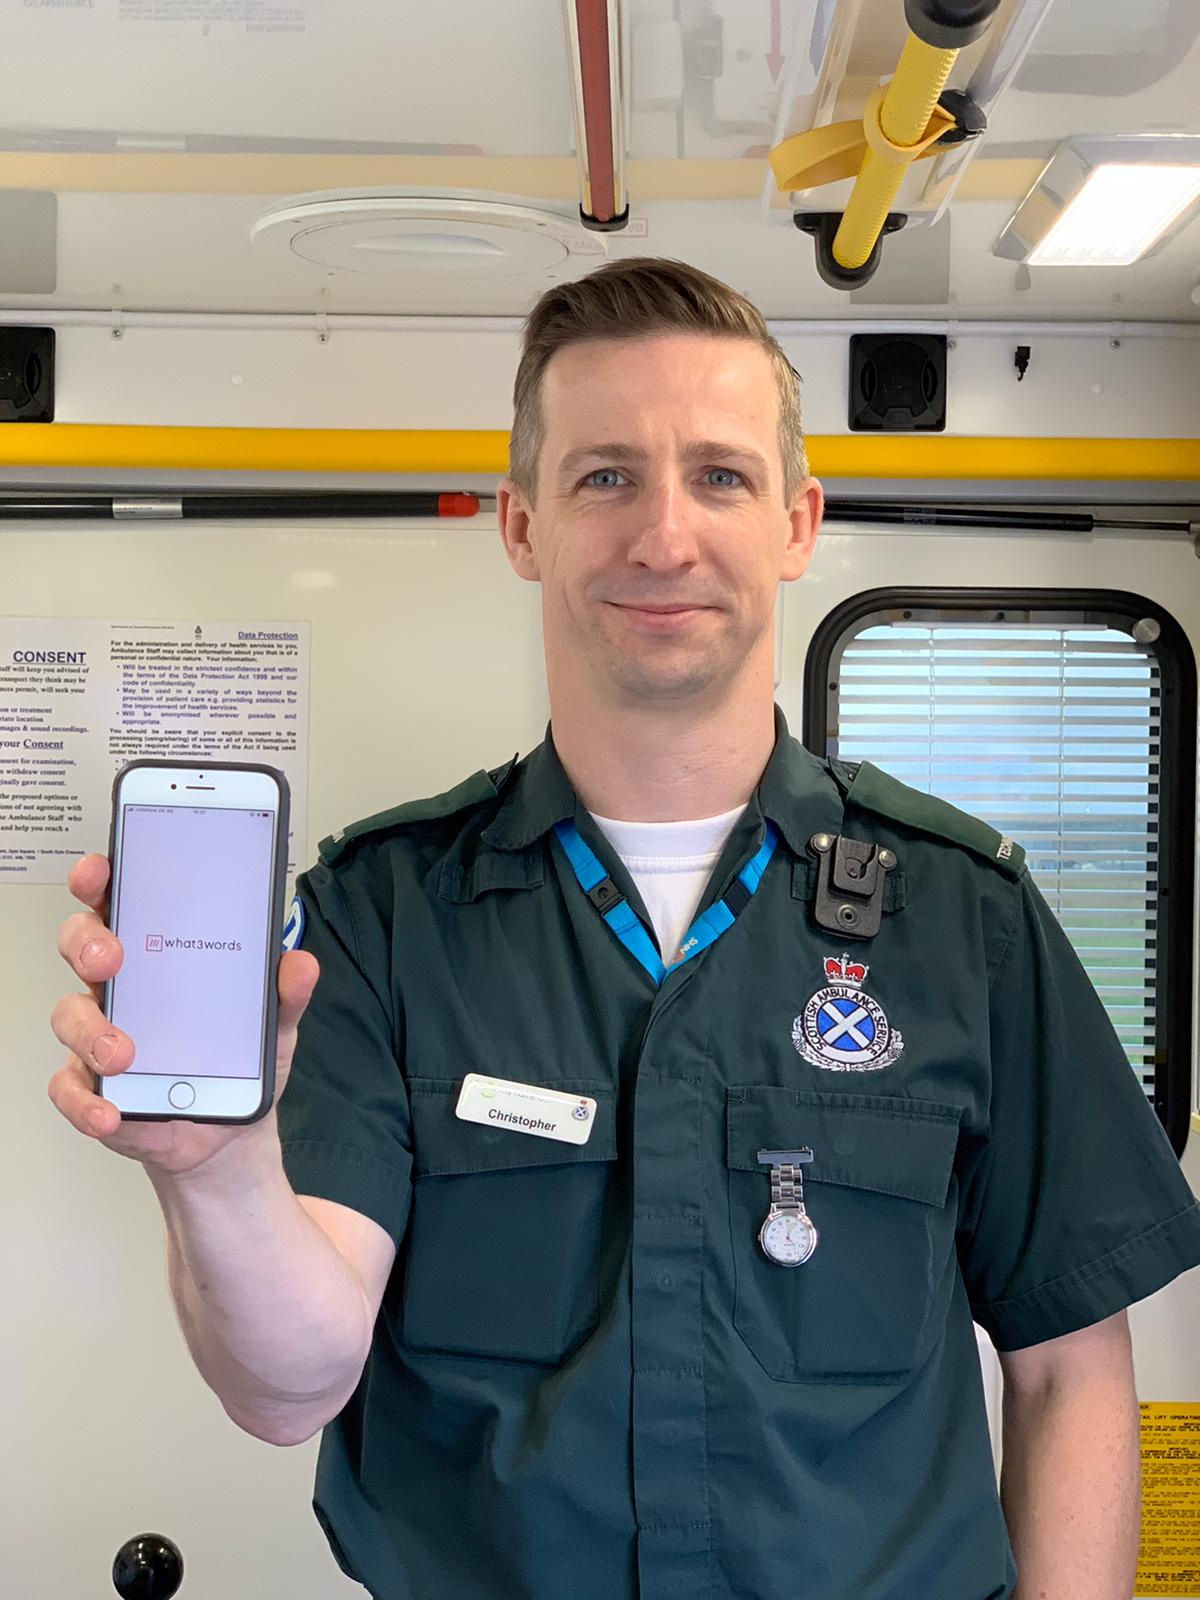 Stornoway based ambulance technician Christopher Adams is encouraging others to download the what3words app as it proved invaluable in a recent rescue in the Western Isles